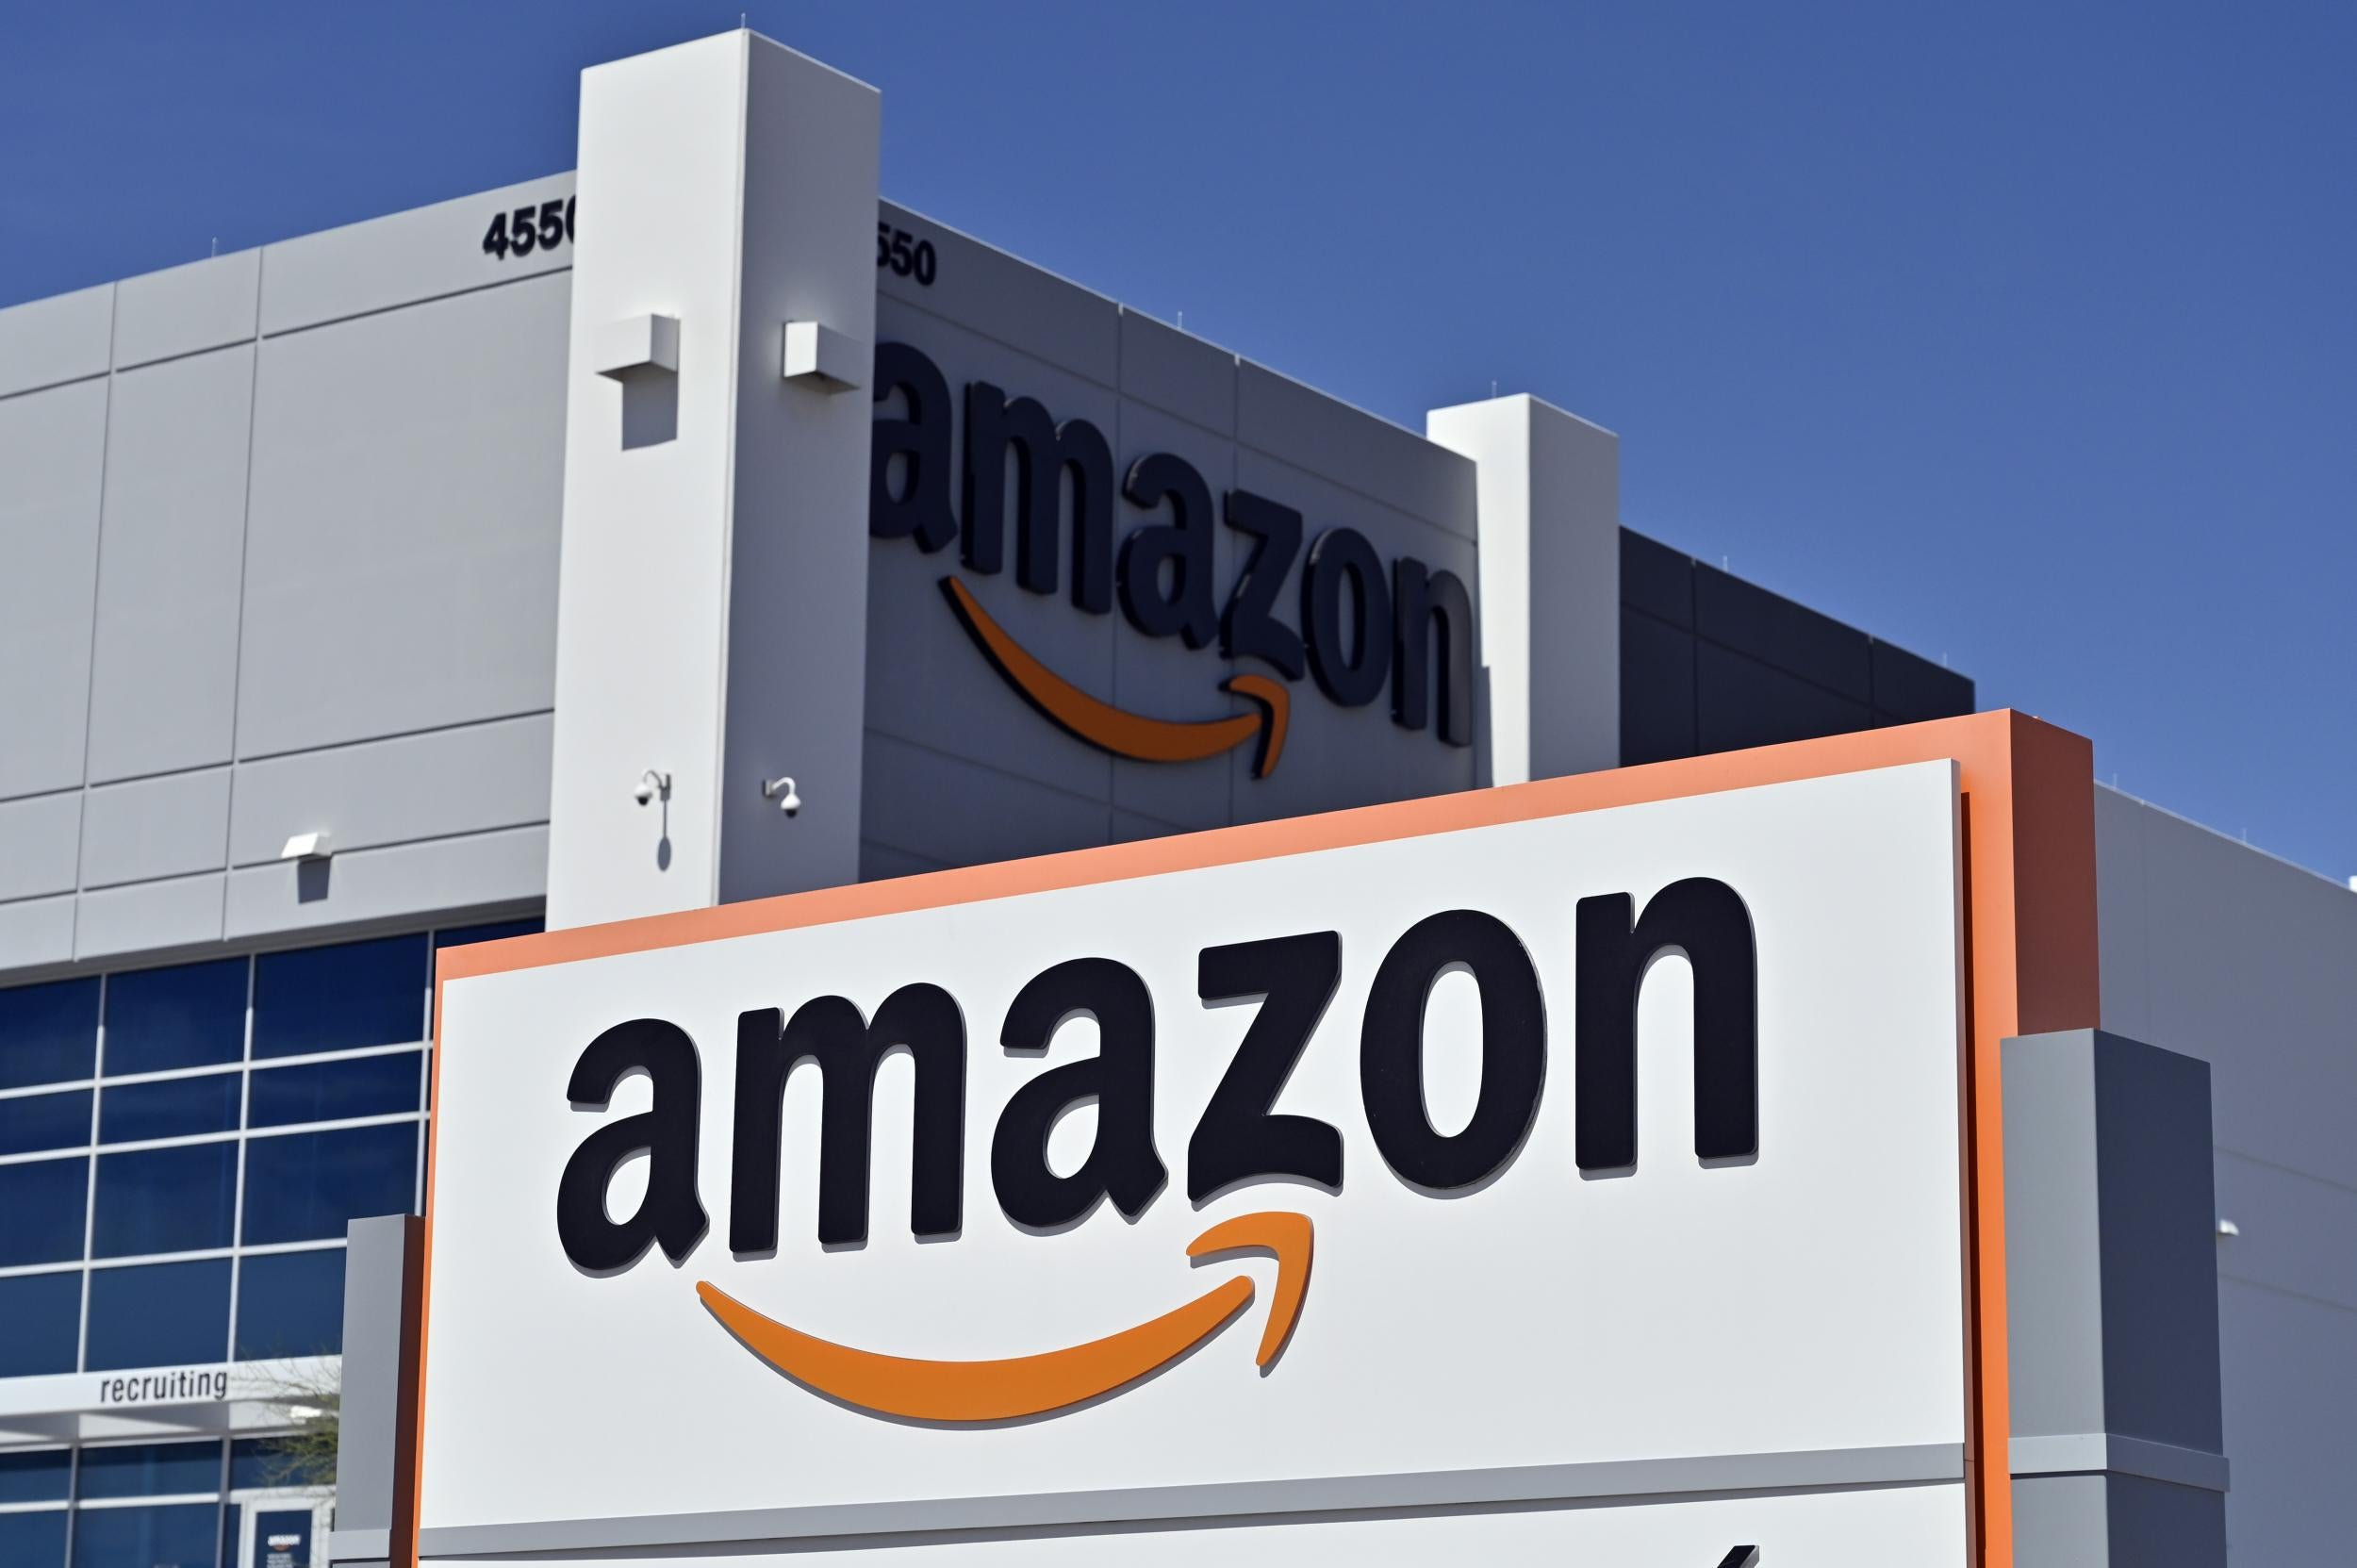 Amazon shareholders call for company to release warehouse safety data after workers raise alarm